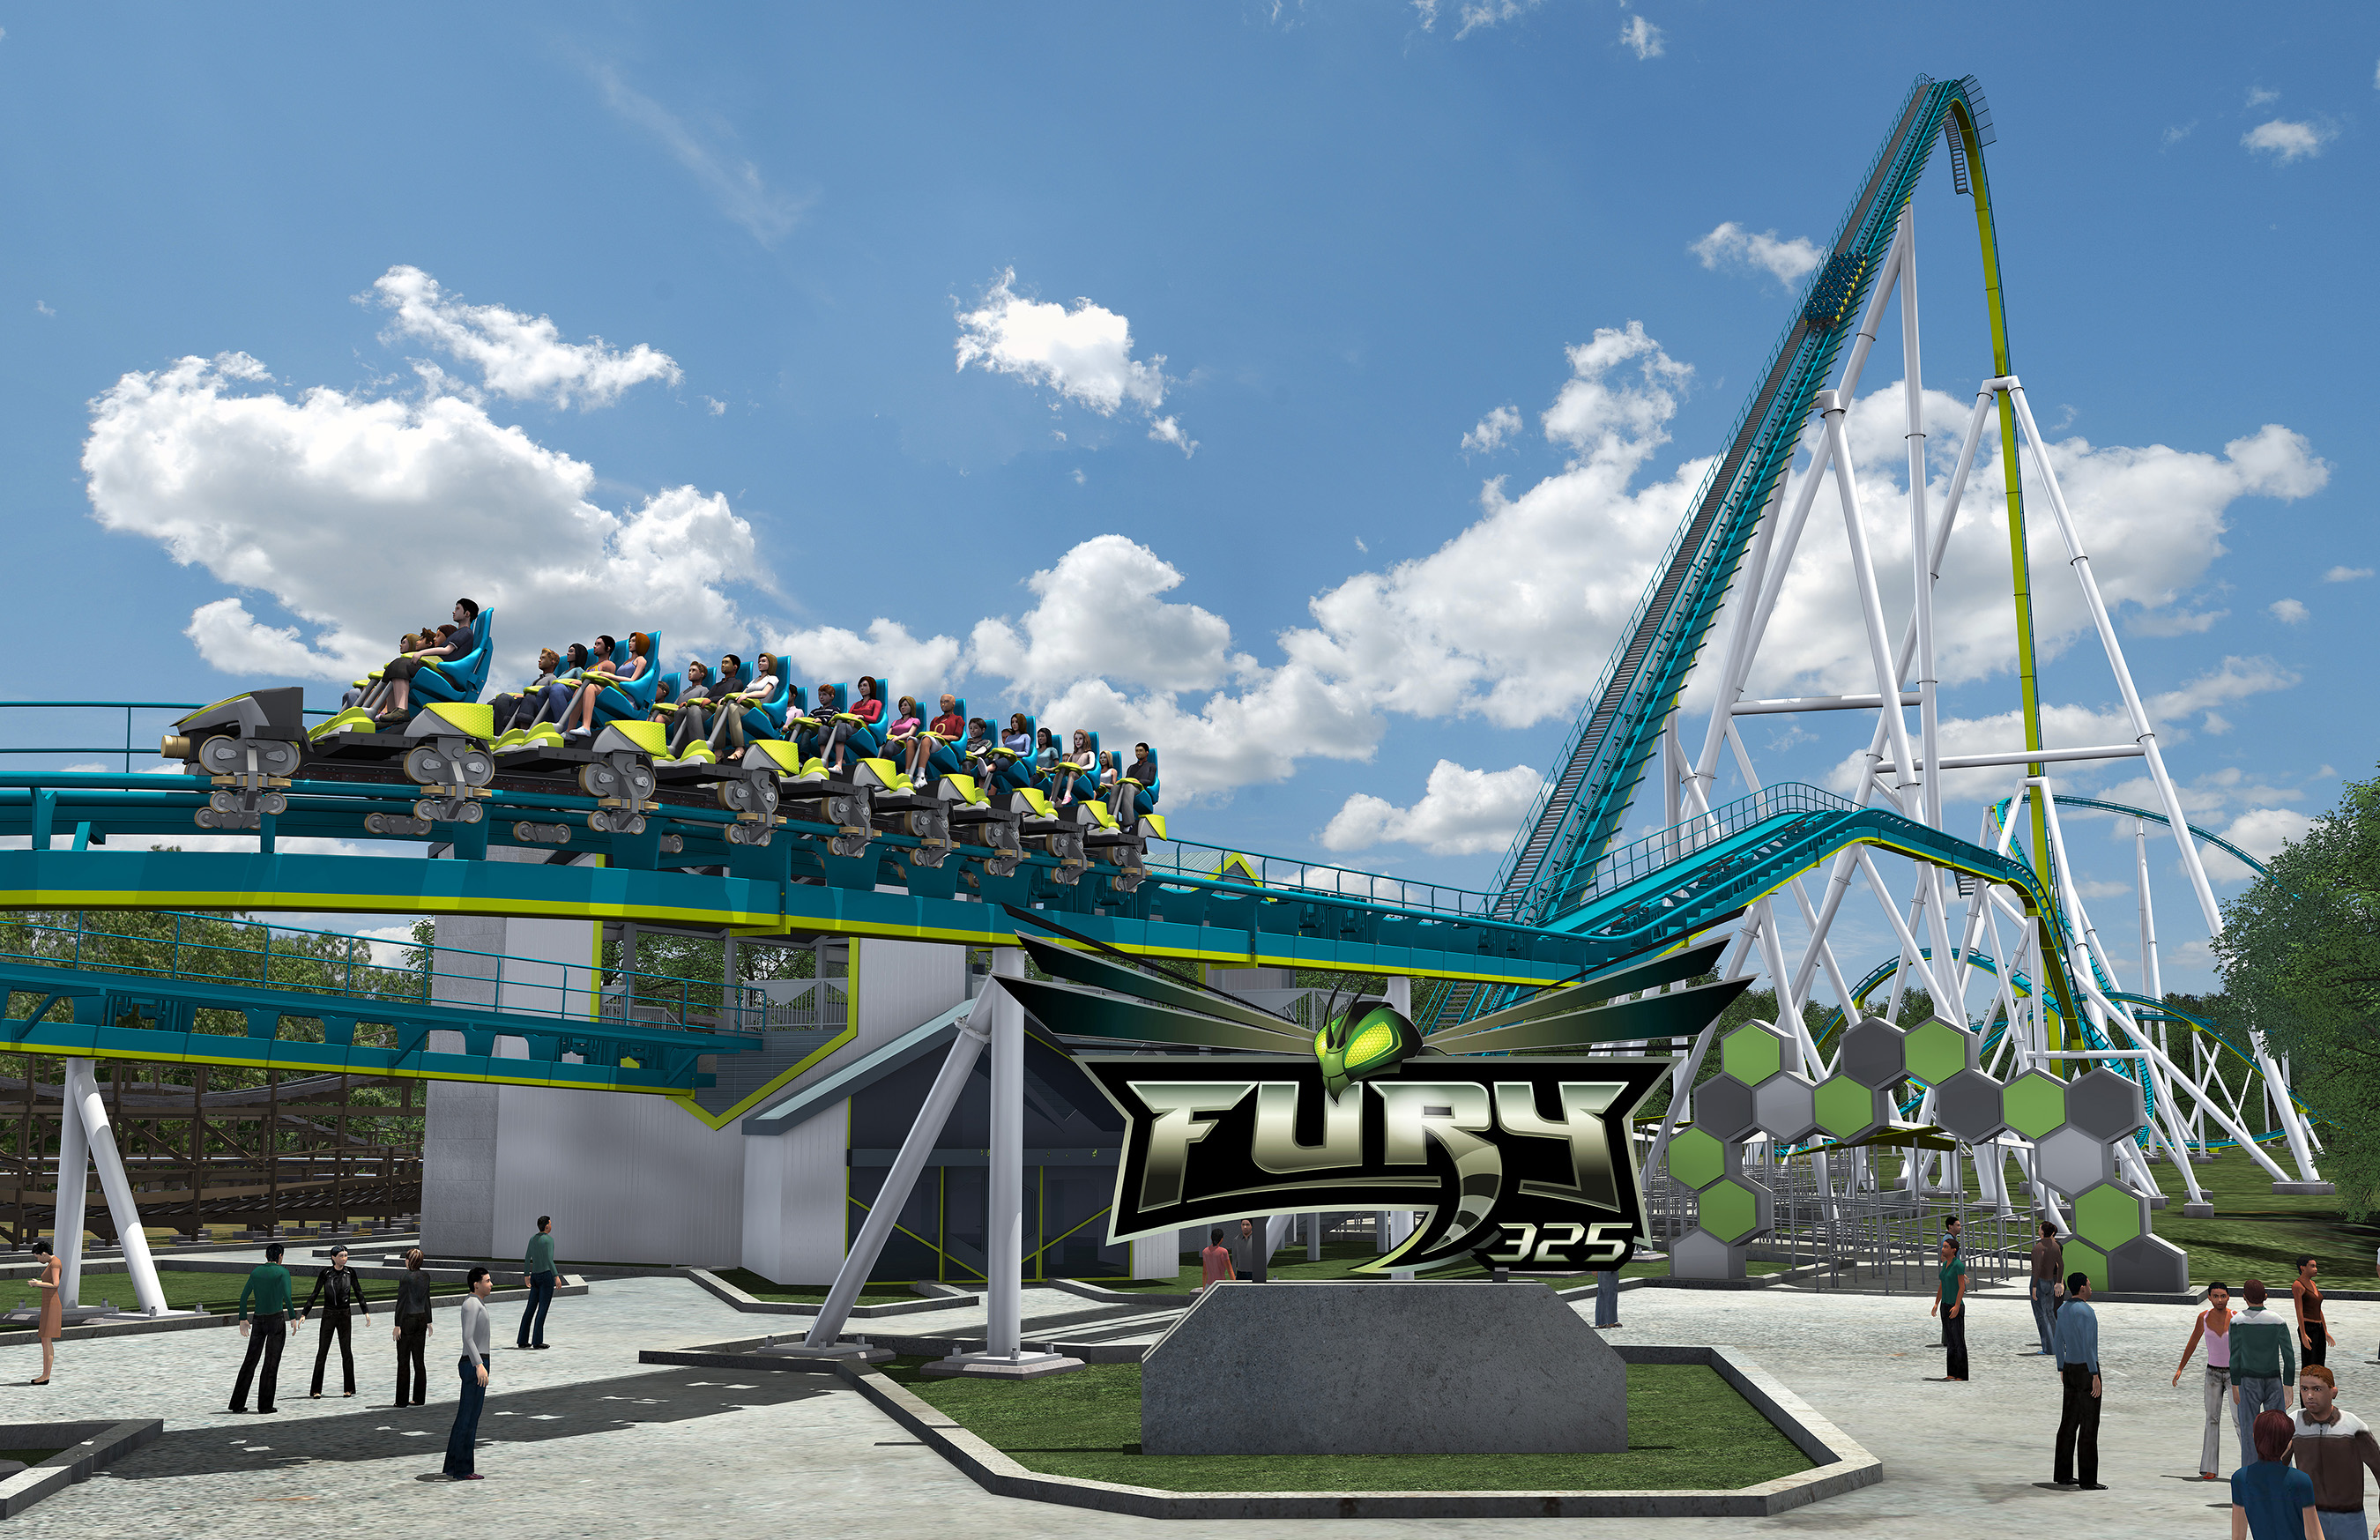 Carowinds unleashes Fury 325, the world's tallest, fastest giga coaster inspired by the furious flight of a hornet. Opening Spring 2015, Fury 325 will give thrill seekers the ride of their life.